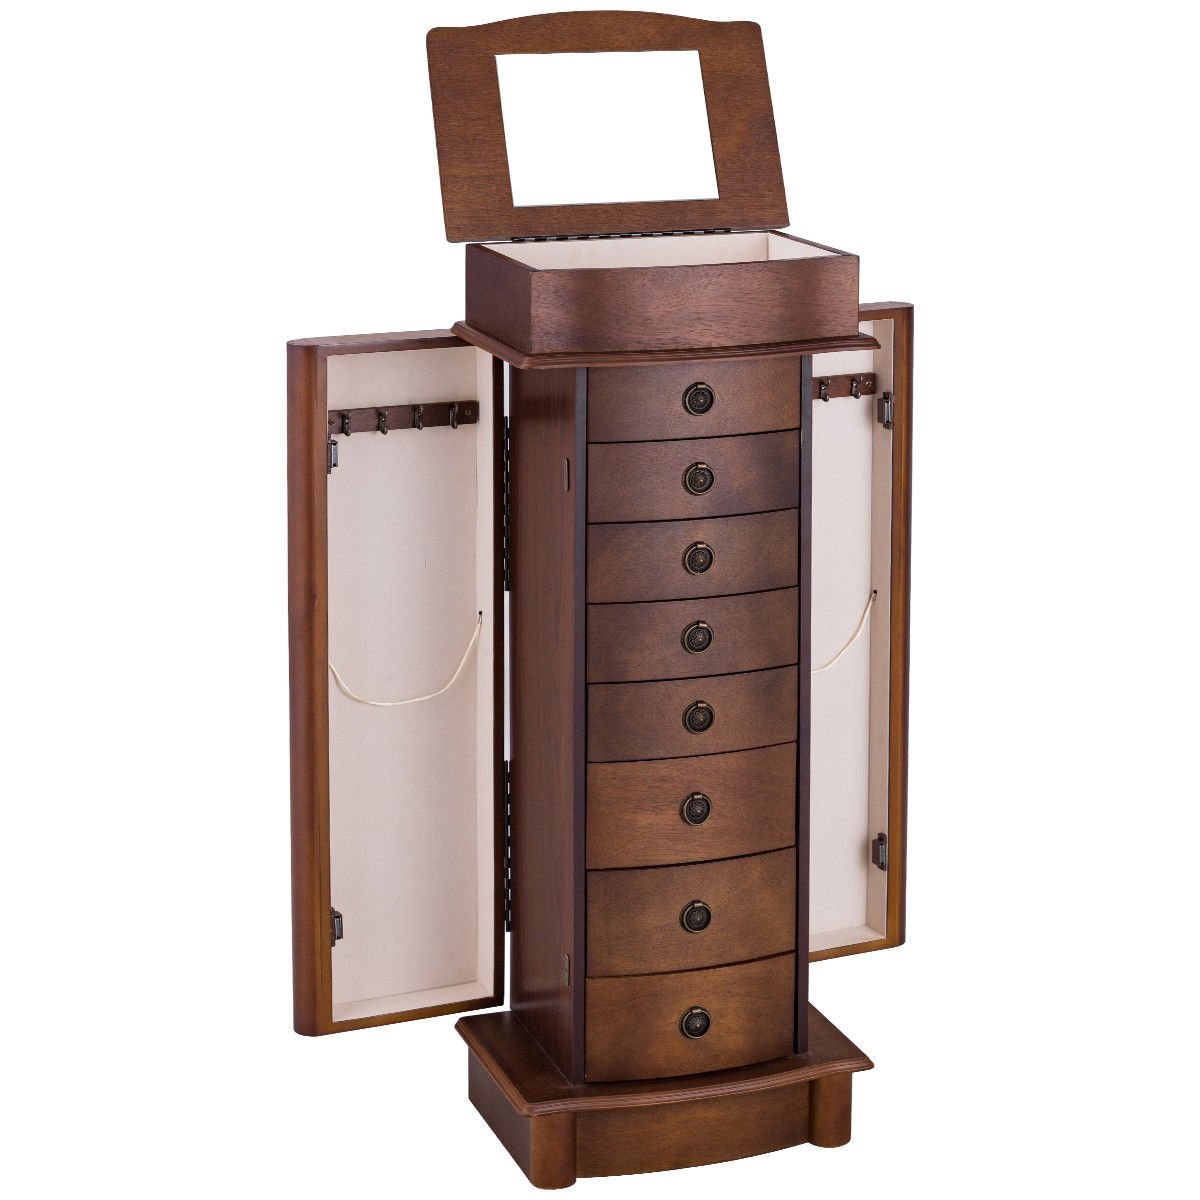 Giantex Jewelry Cabinet Armoire Storage Chest Box Wood Walnut Finish Stand Organizer Wood with Side Doors by Giantex